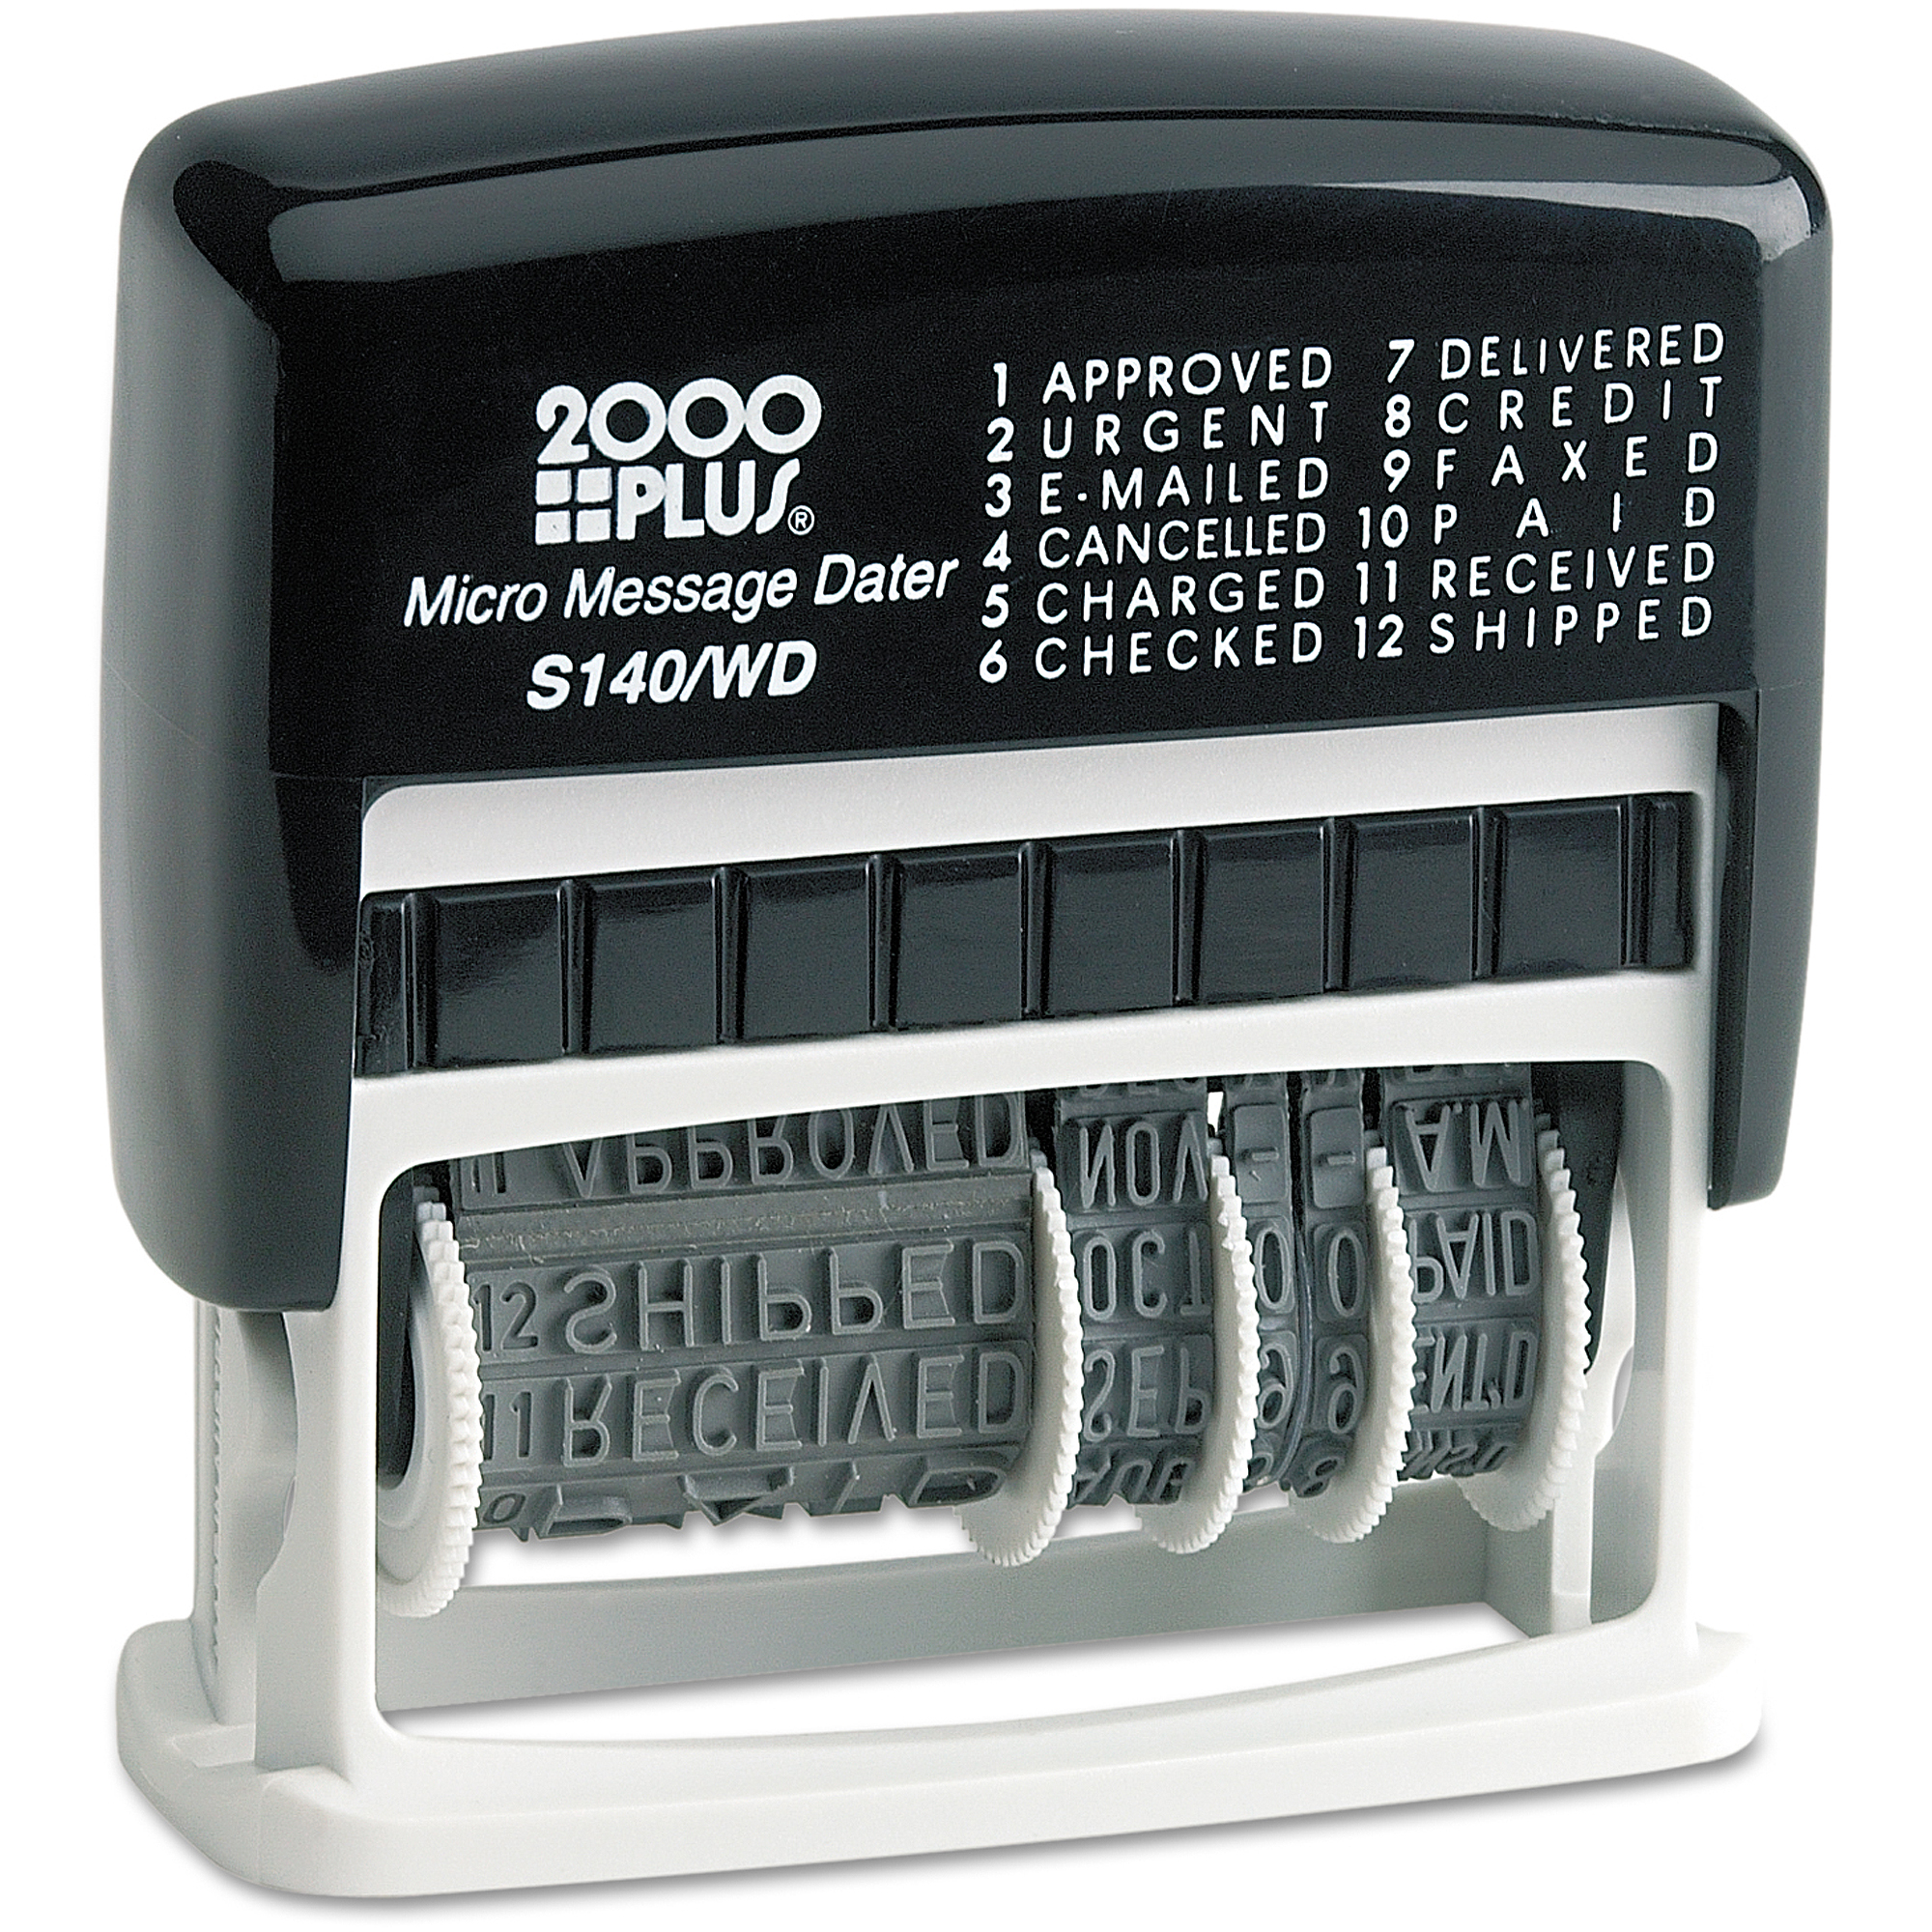 2000 PLUS Micro Message Dater, Self-Inking